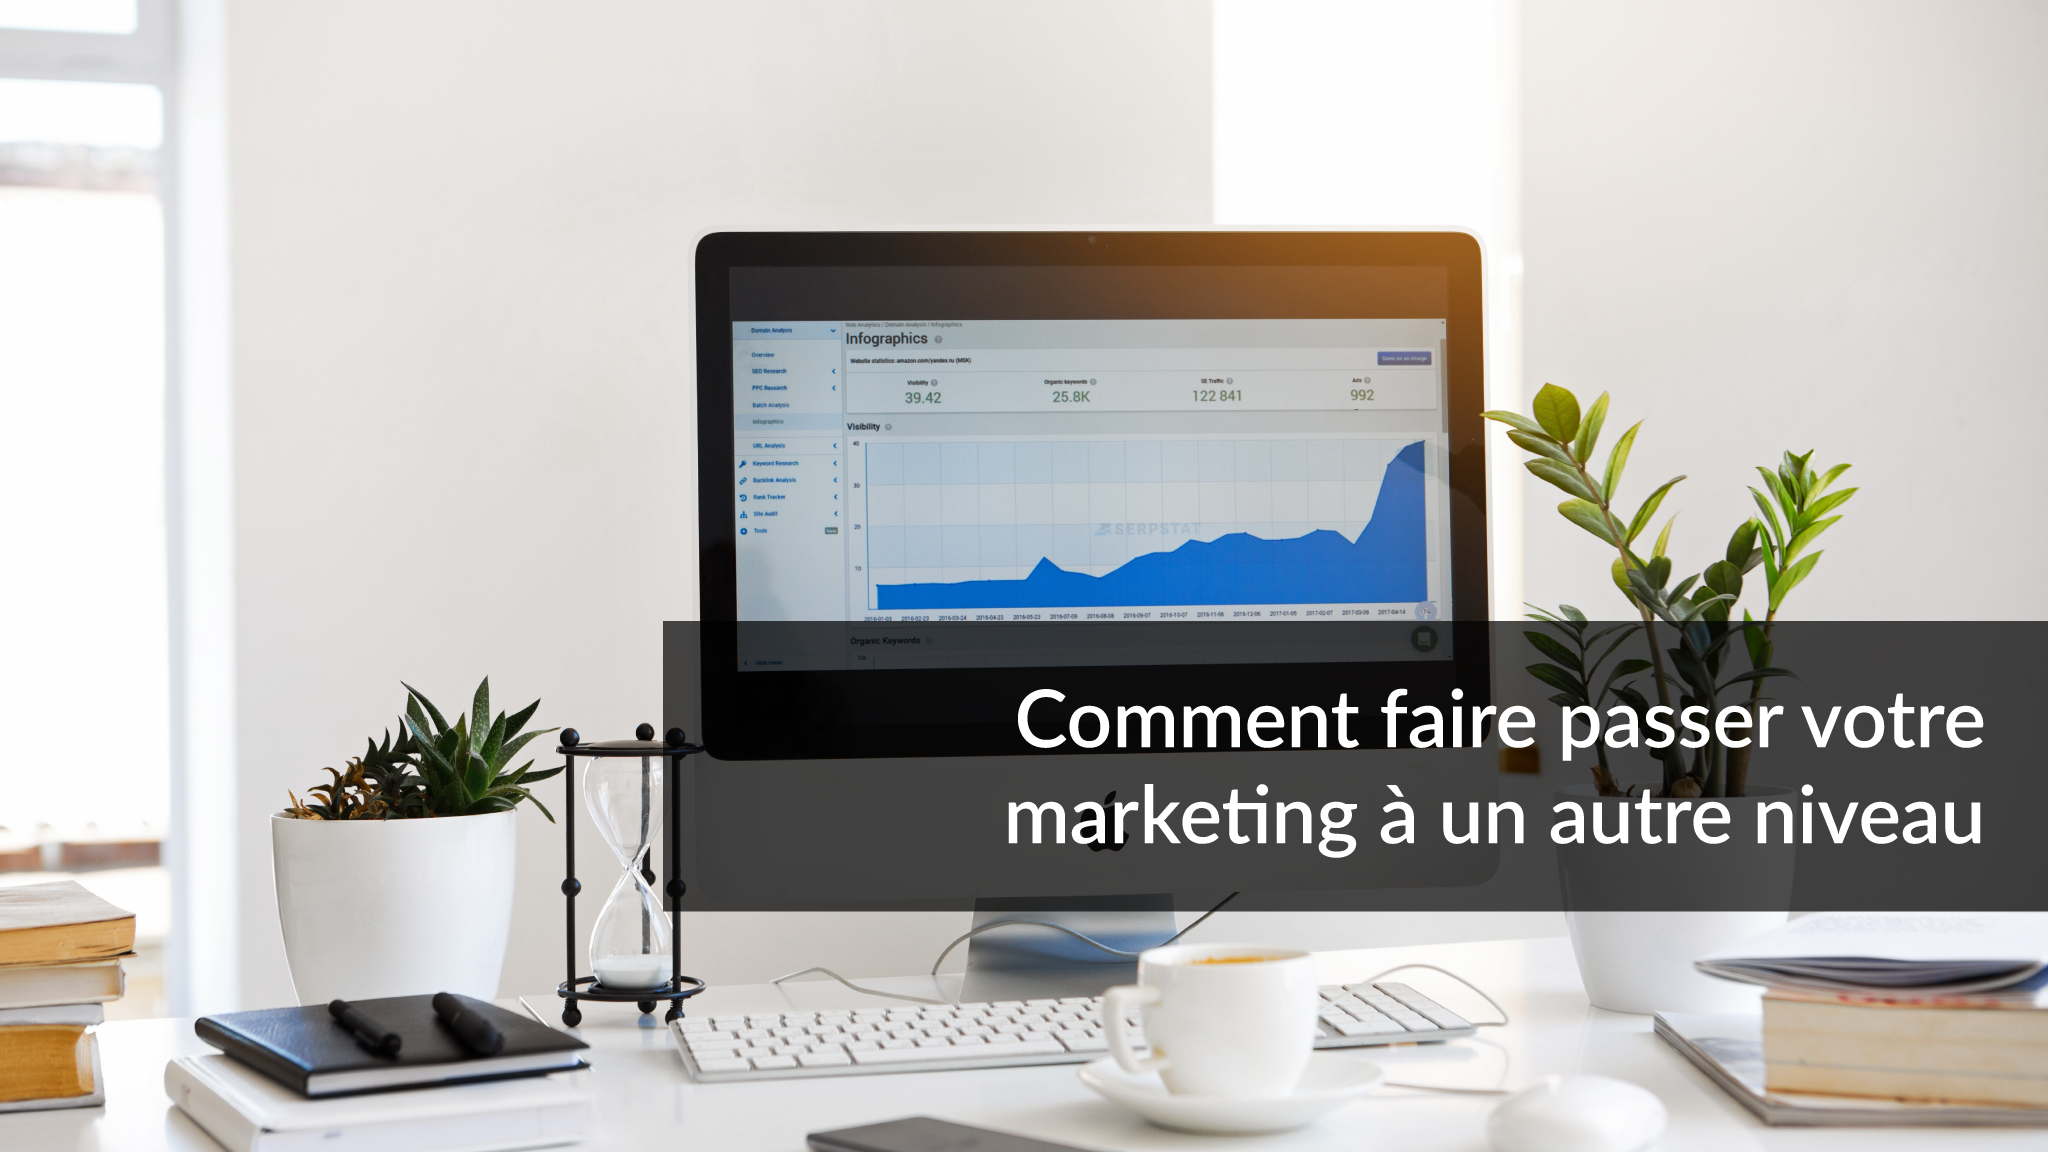 Comment faire passer votre marketing à un autre niveau | Studio Grafik